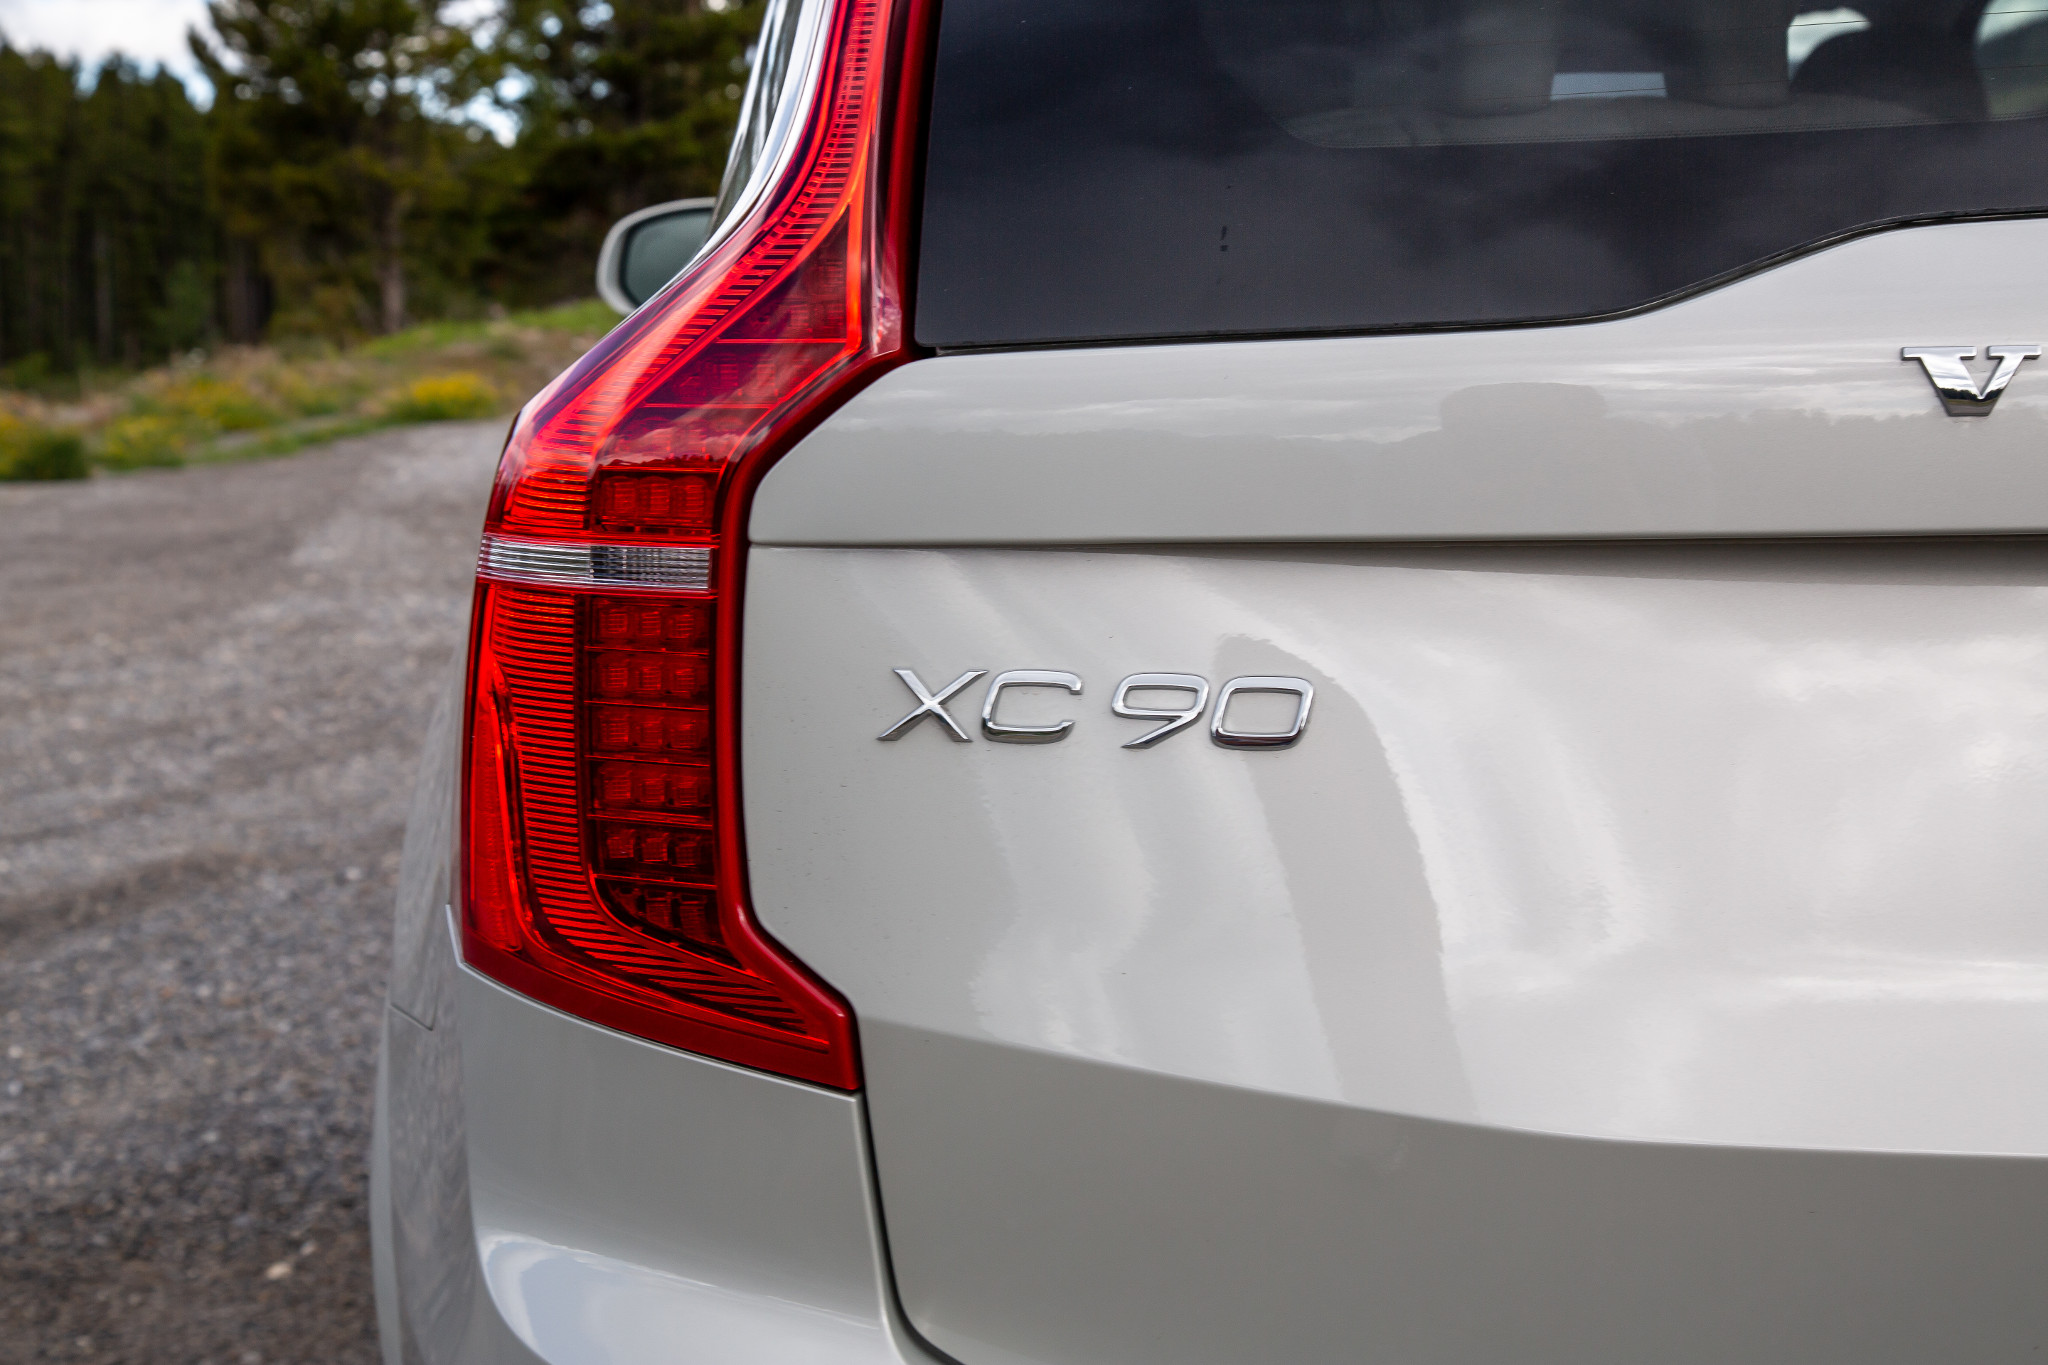 2020 volvo xc90 pros and cons  6 things we like  and 3 not so much